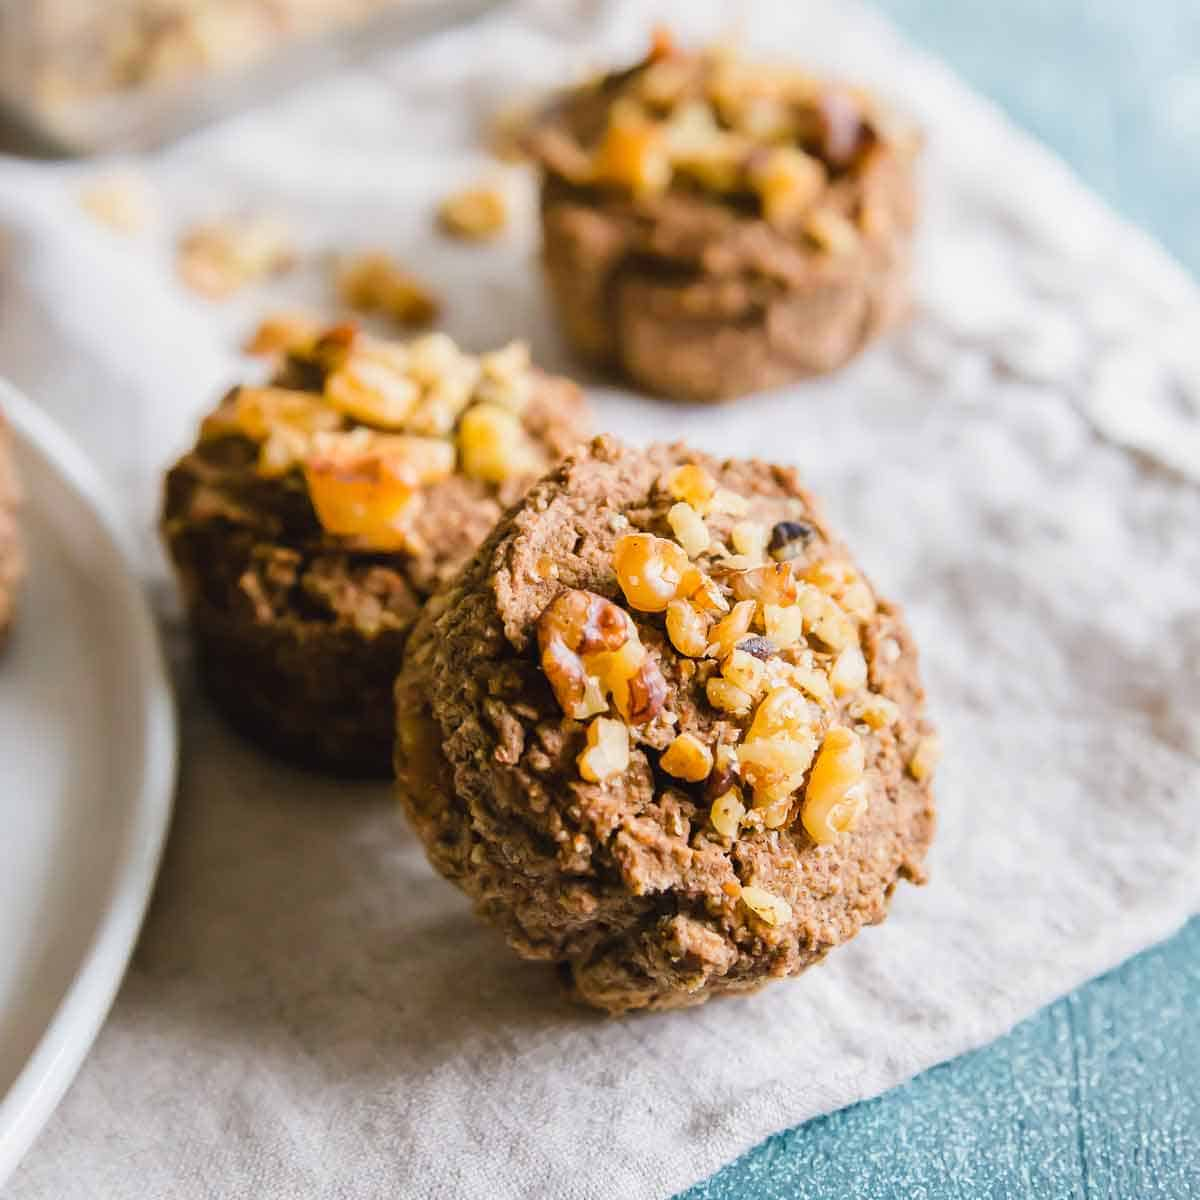 If you're looking for almond pulp recipes, these banana nut almond pulp muffins are an easy way to get rid of the leftover almond pulp you have on hand.